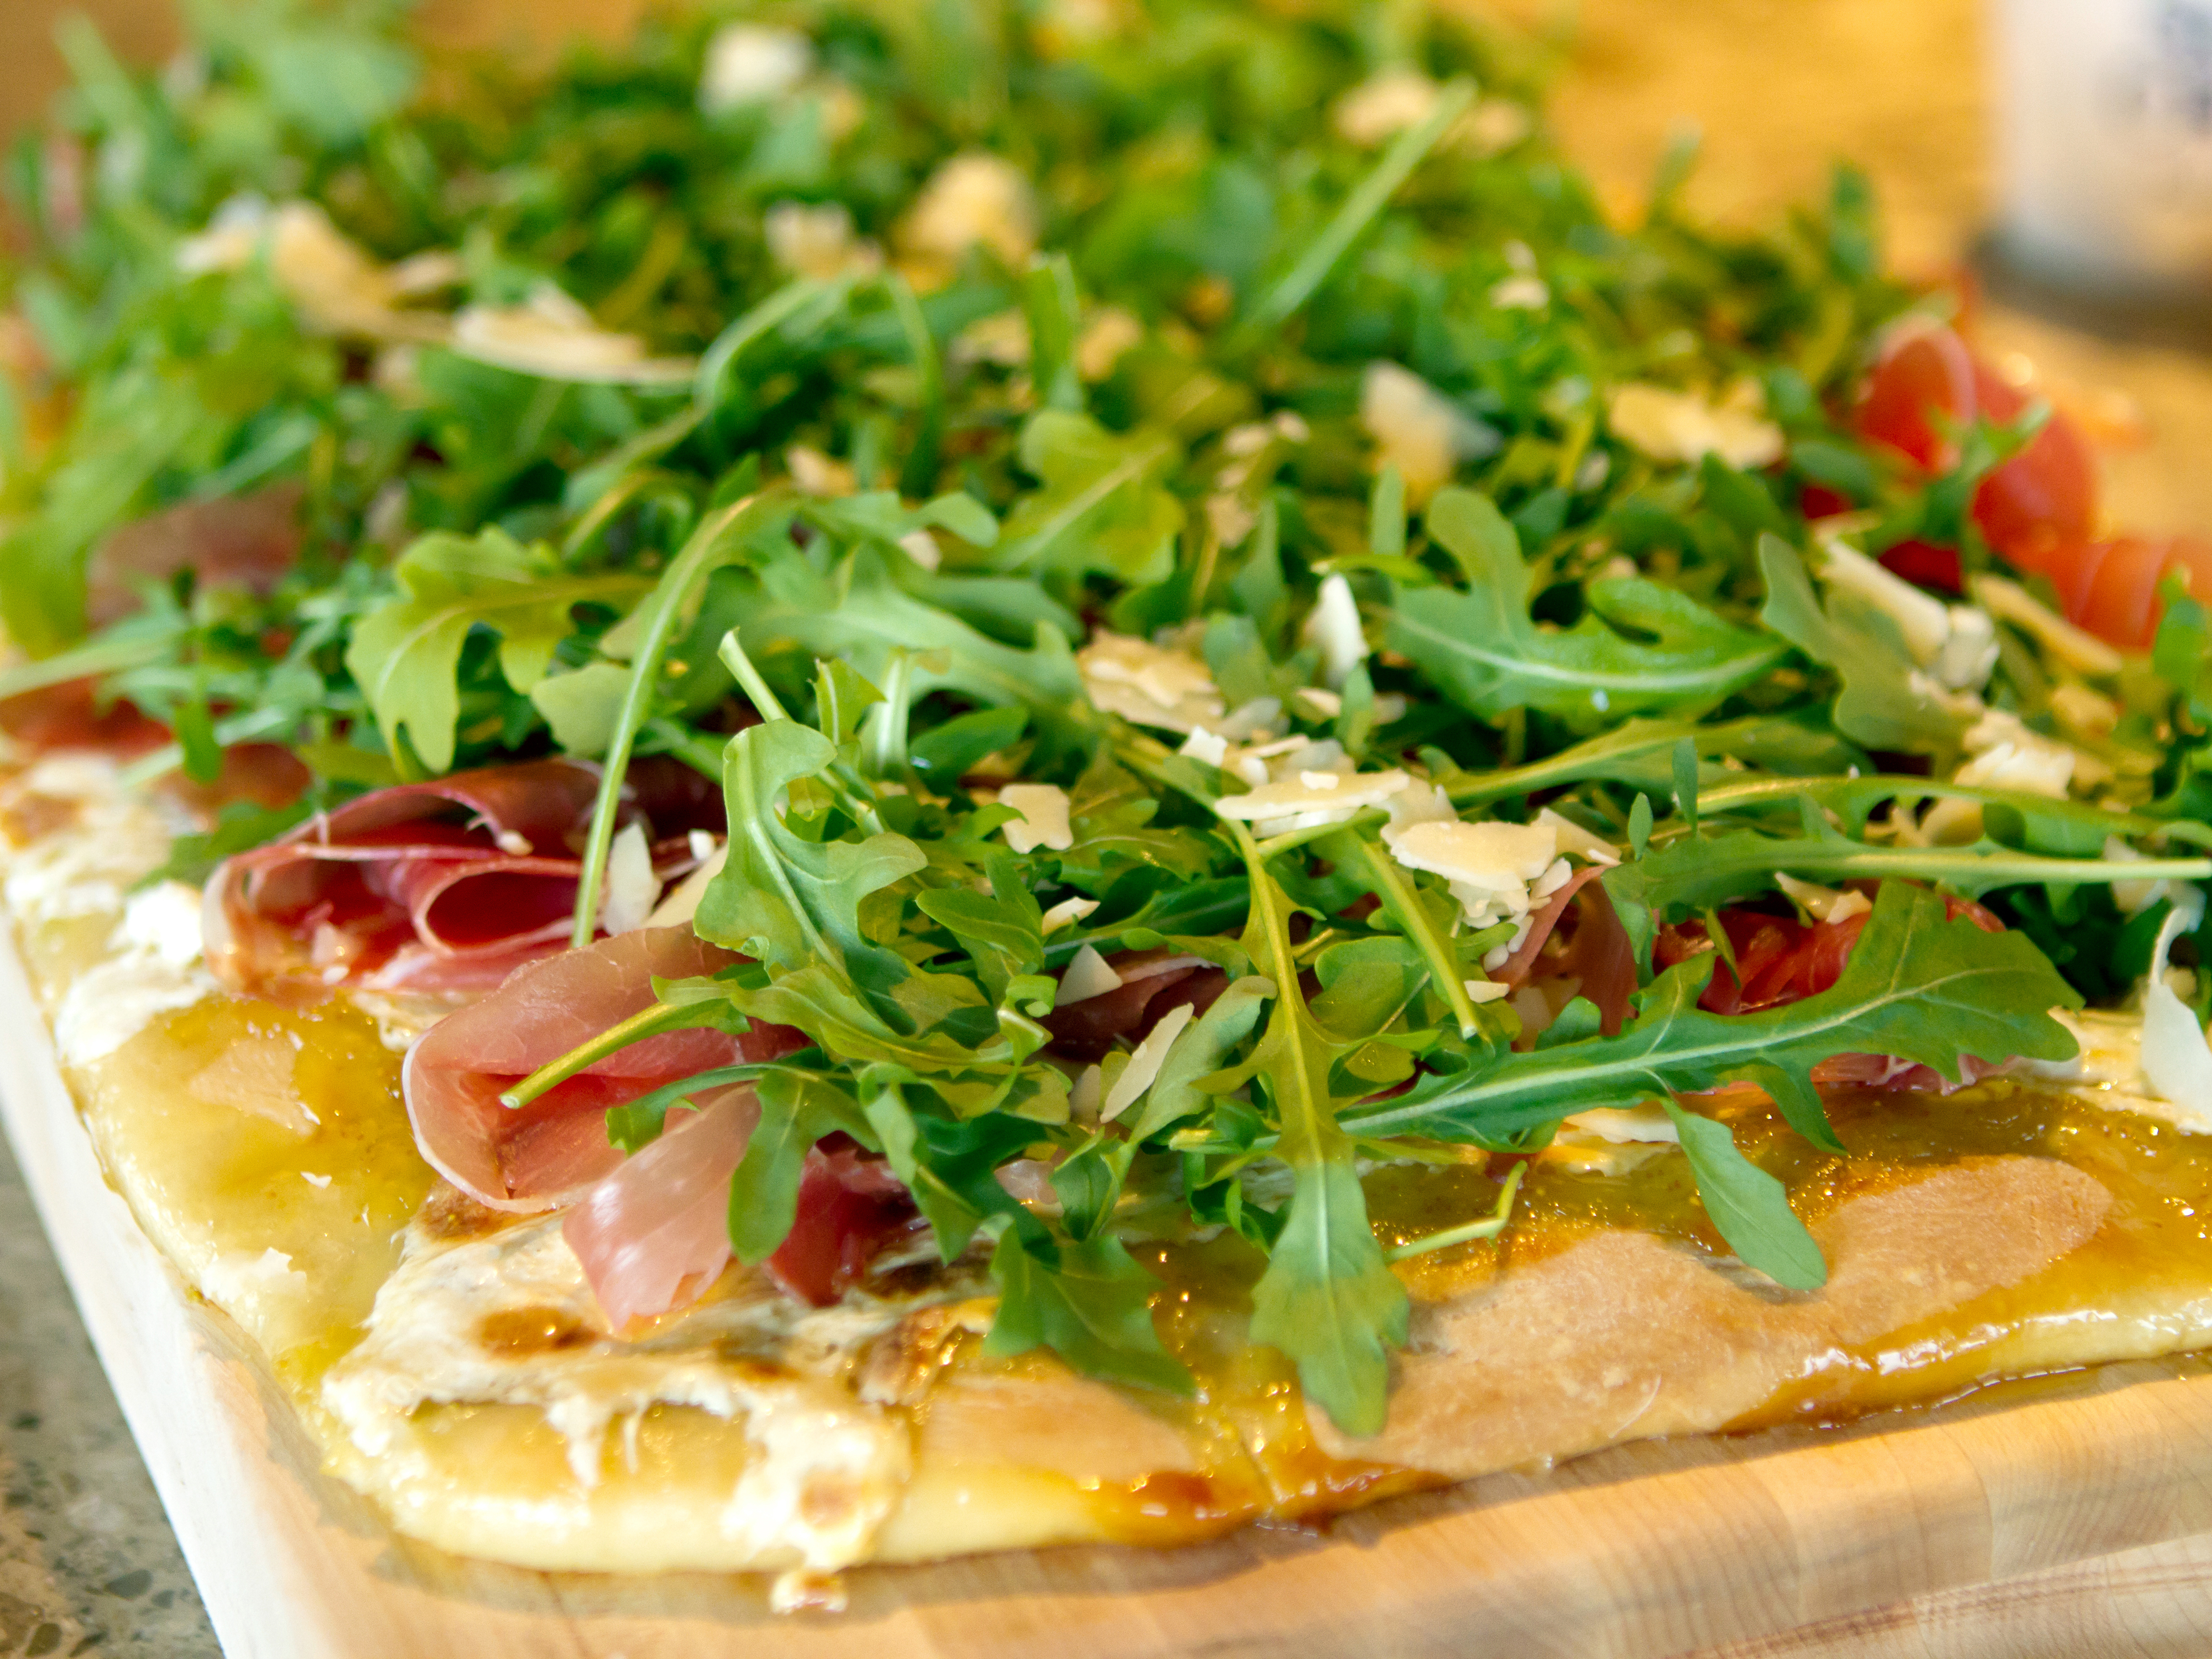 Ree Drummond - host, prepares Fig and Prosciutto Pizza with Arugula during episode 4 as seen on Food Network's Pioneer Woman Season 1.